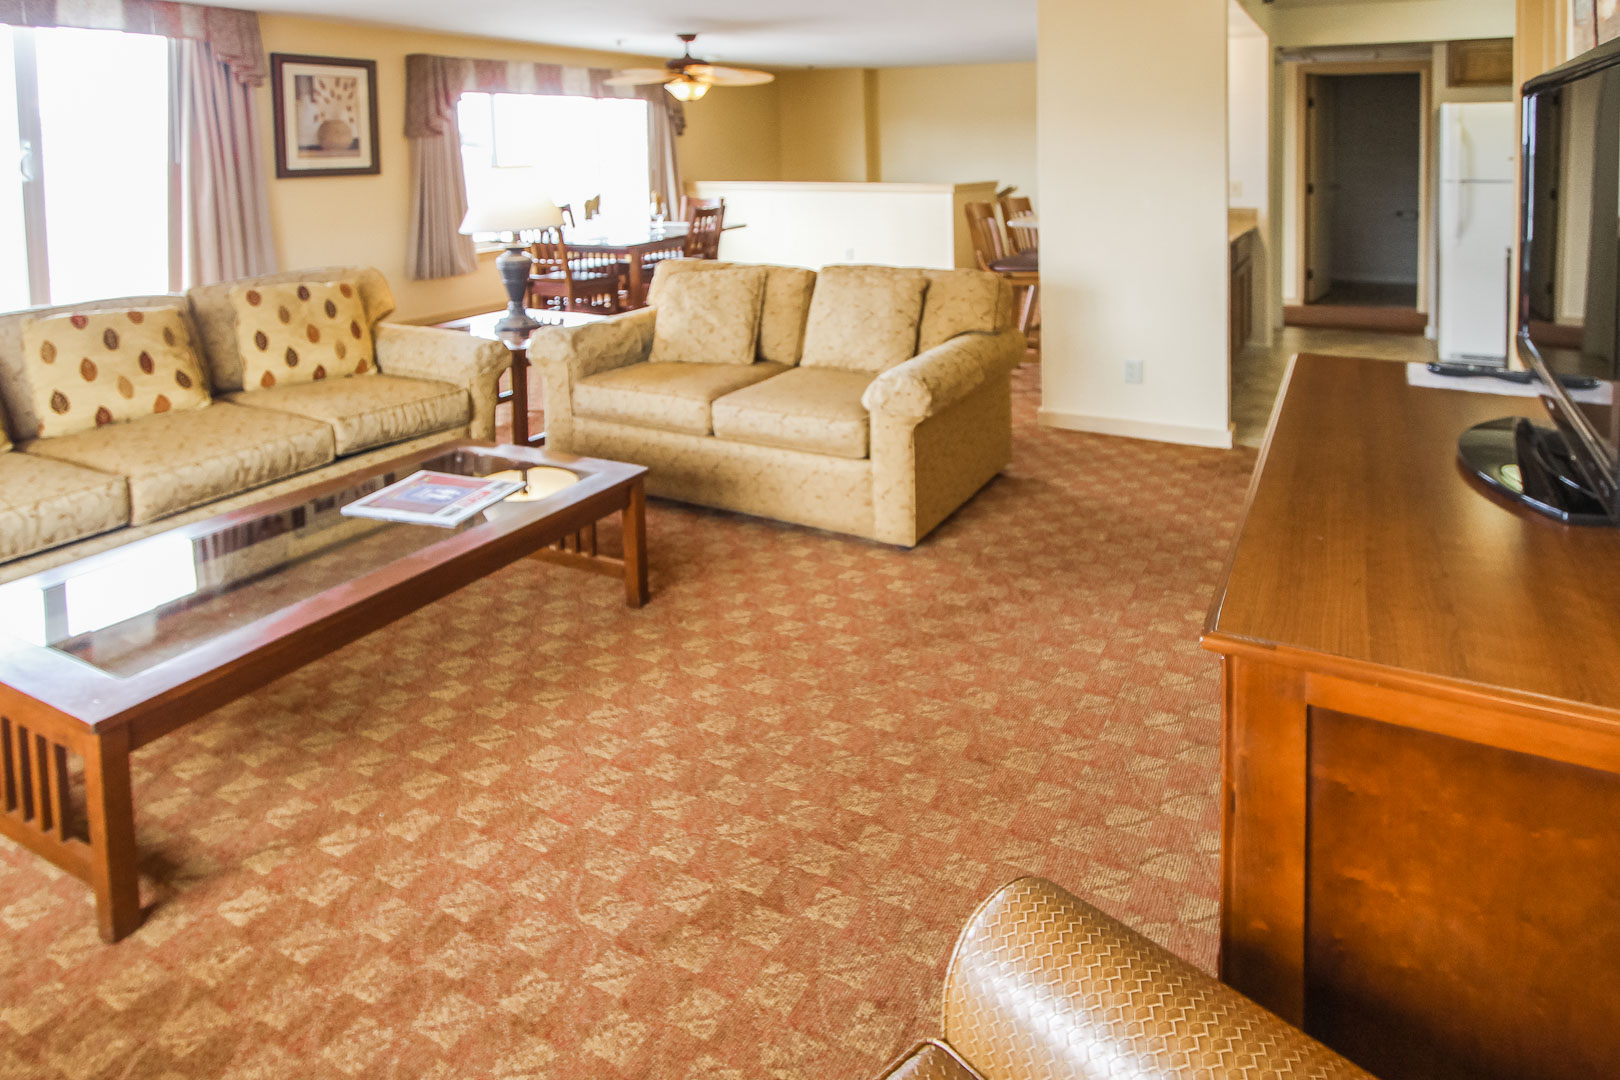 An upgraded living room area at VRI's Pacific Grove Plaza in California.